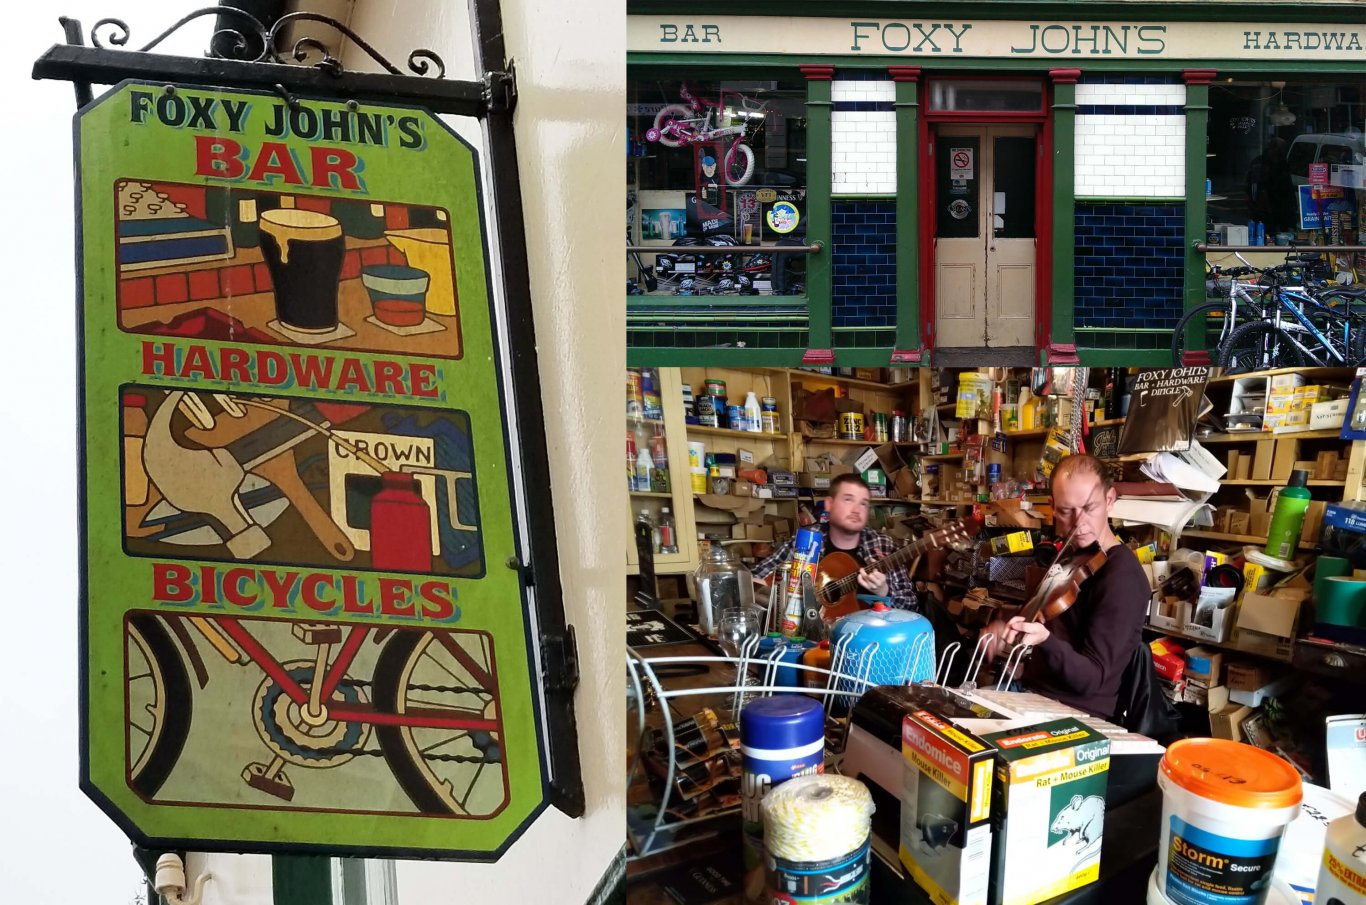 Collage of scenes from Foxy John's pub in Dingle, Ireland